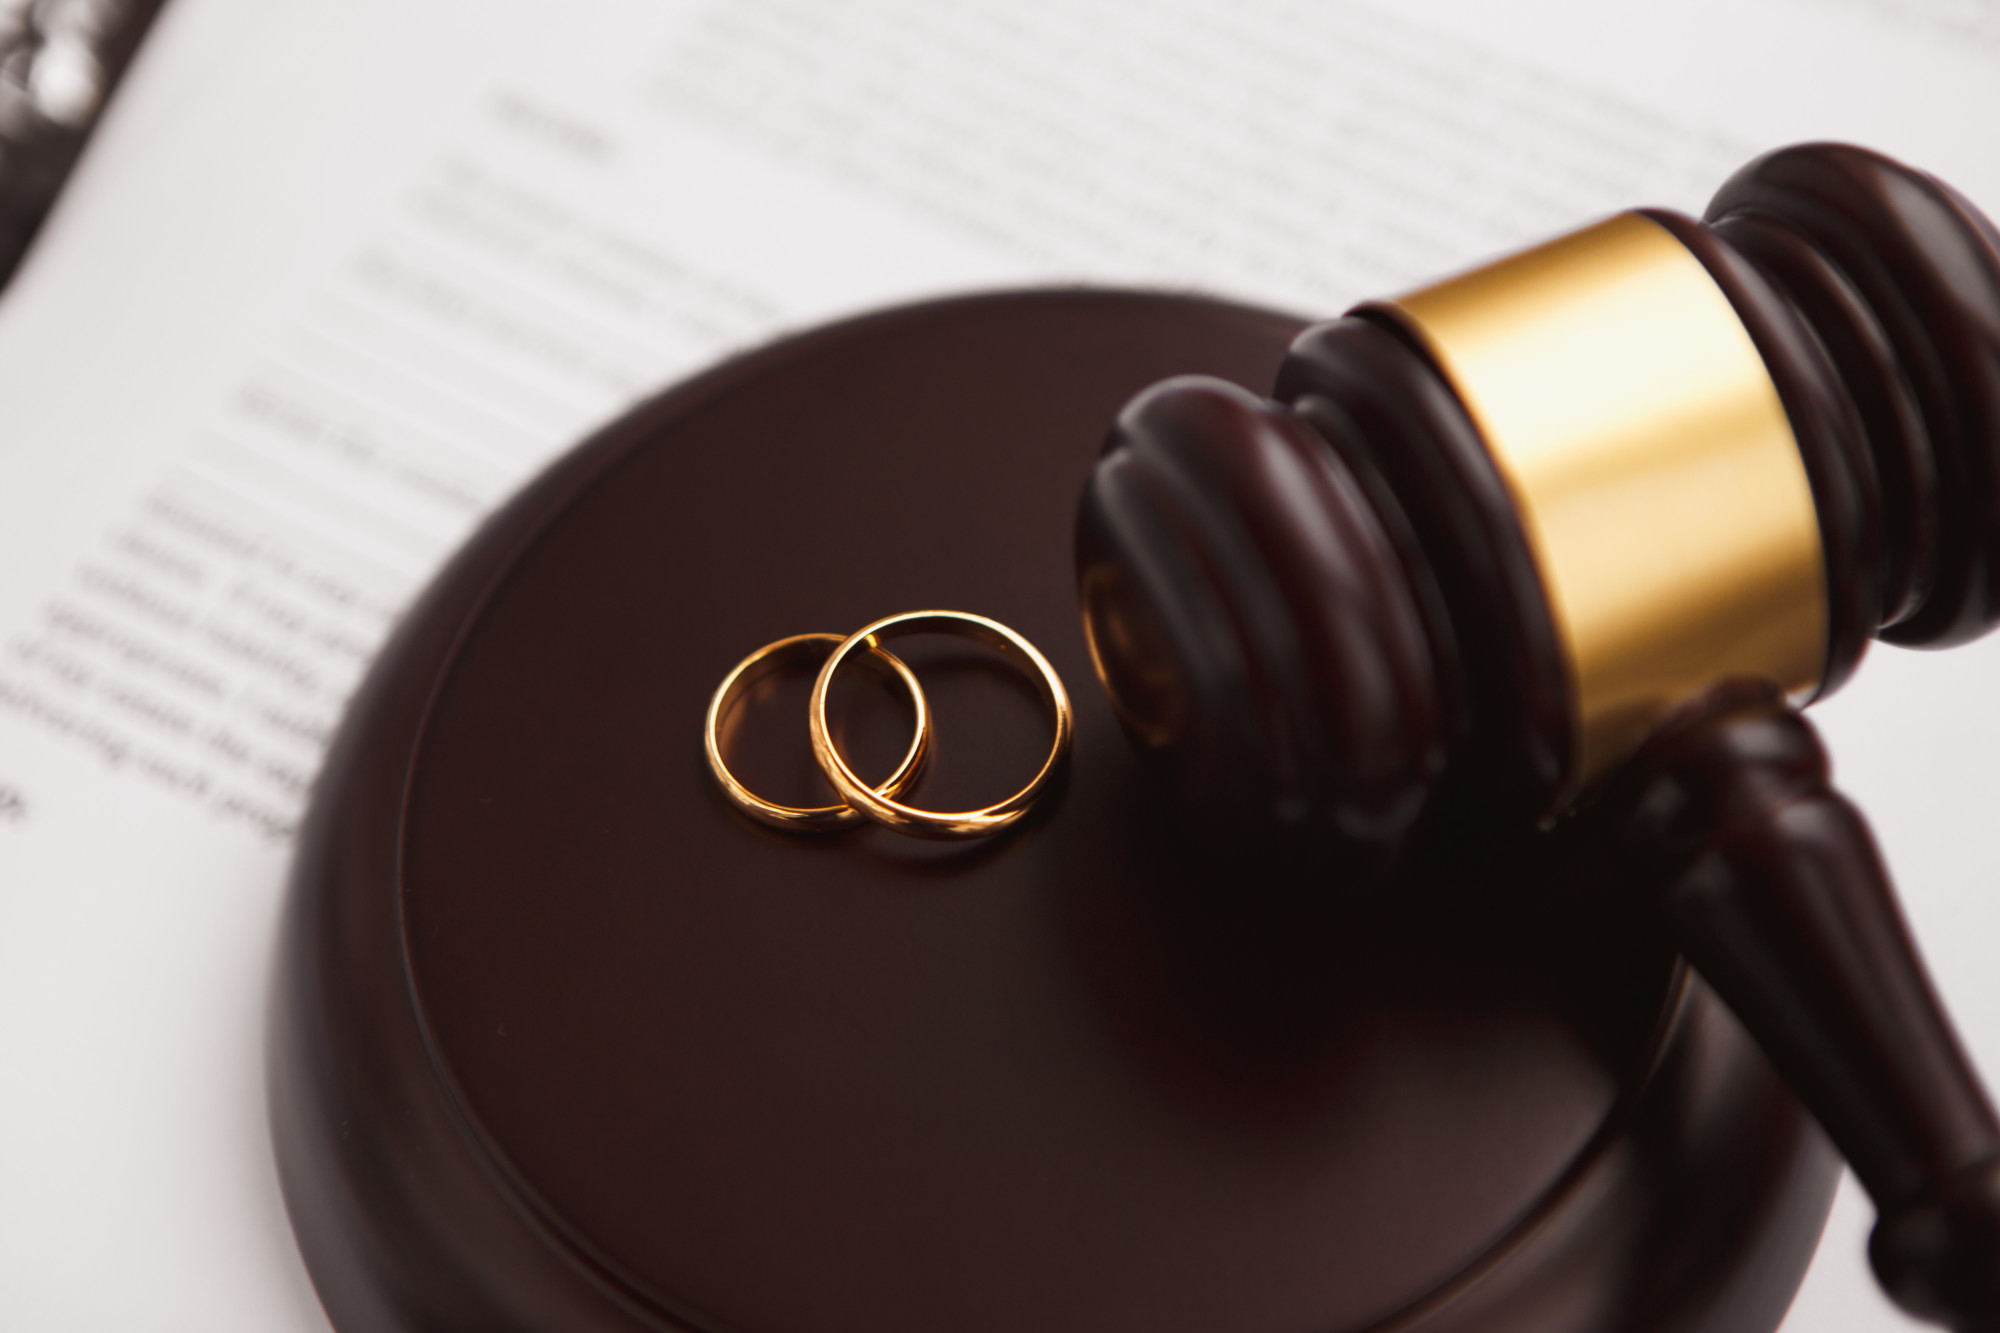 divorce ligation vs divorce mediation in family law